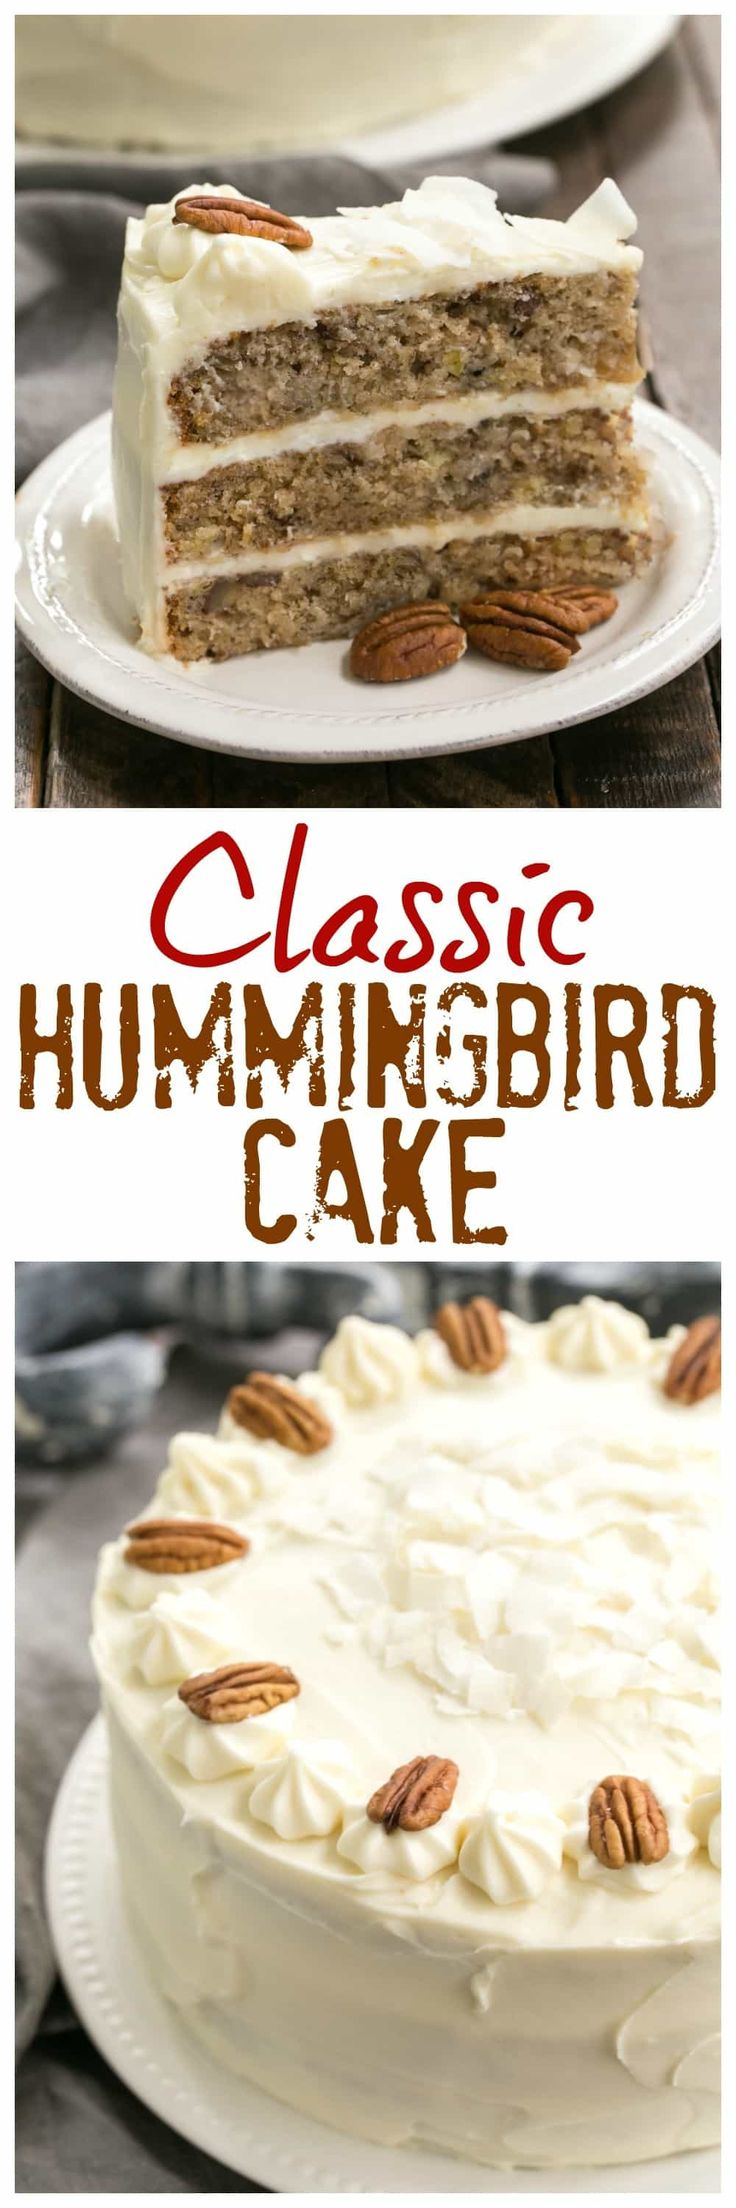 3237 Best My Place Images On Pinterest Baking Center Cooking Food Makaroni Rasa Banana Taro Classic Hummingbird Cake With Coconut A Dense Chock Full Of Pecans